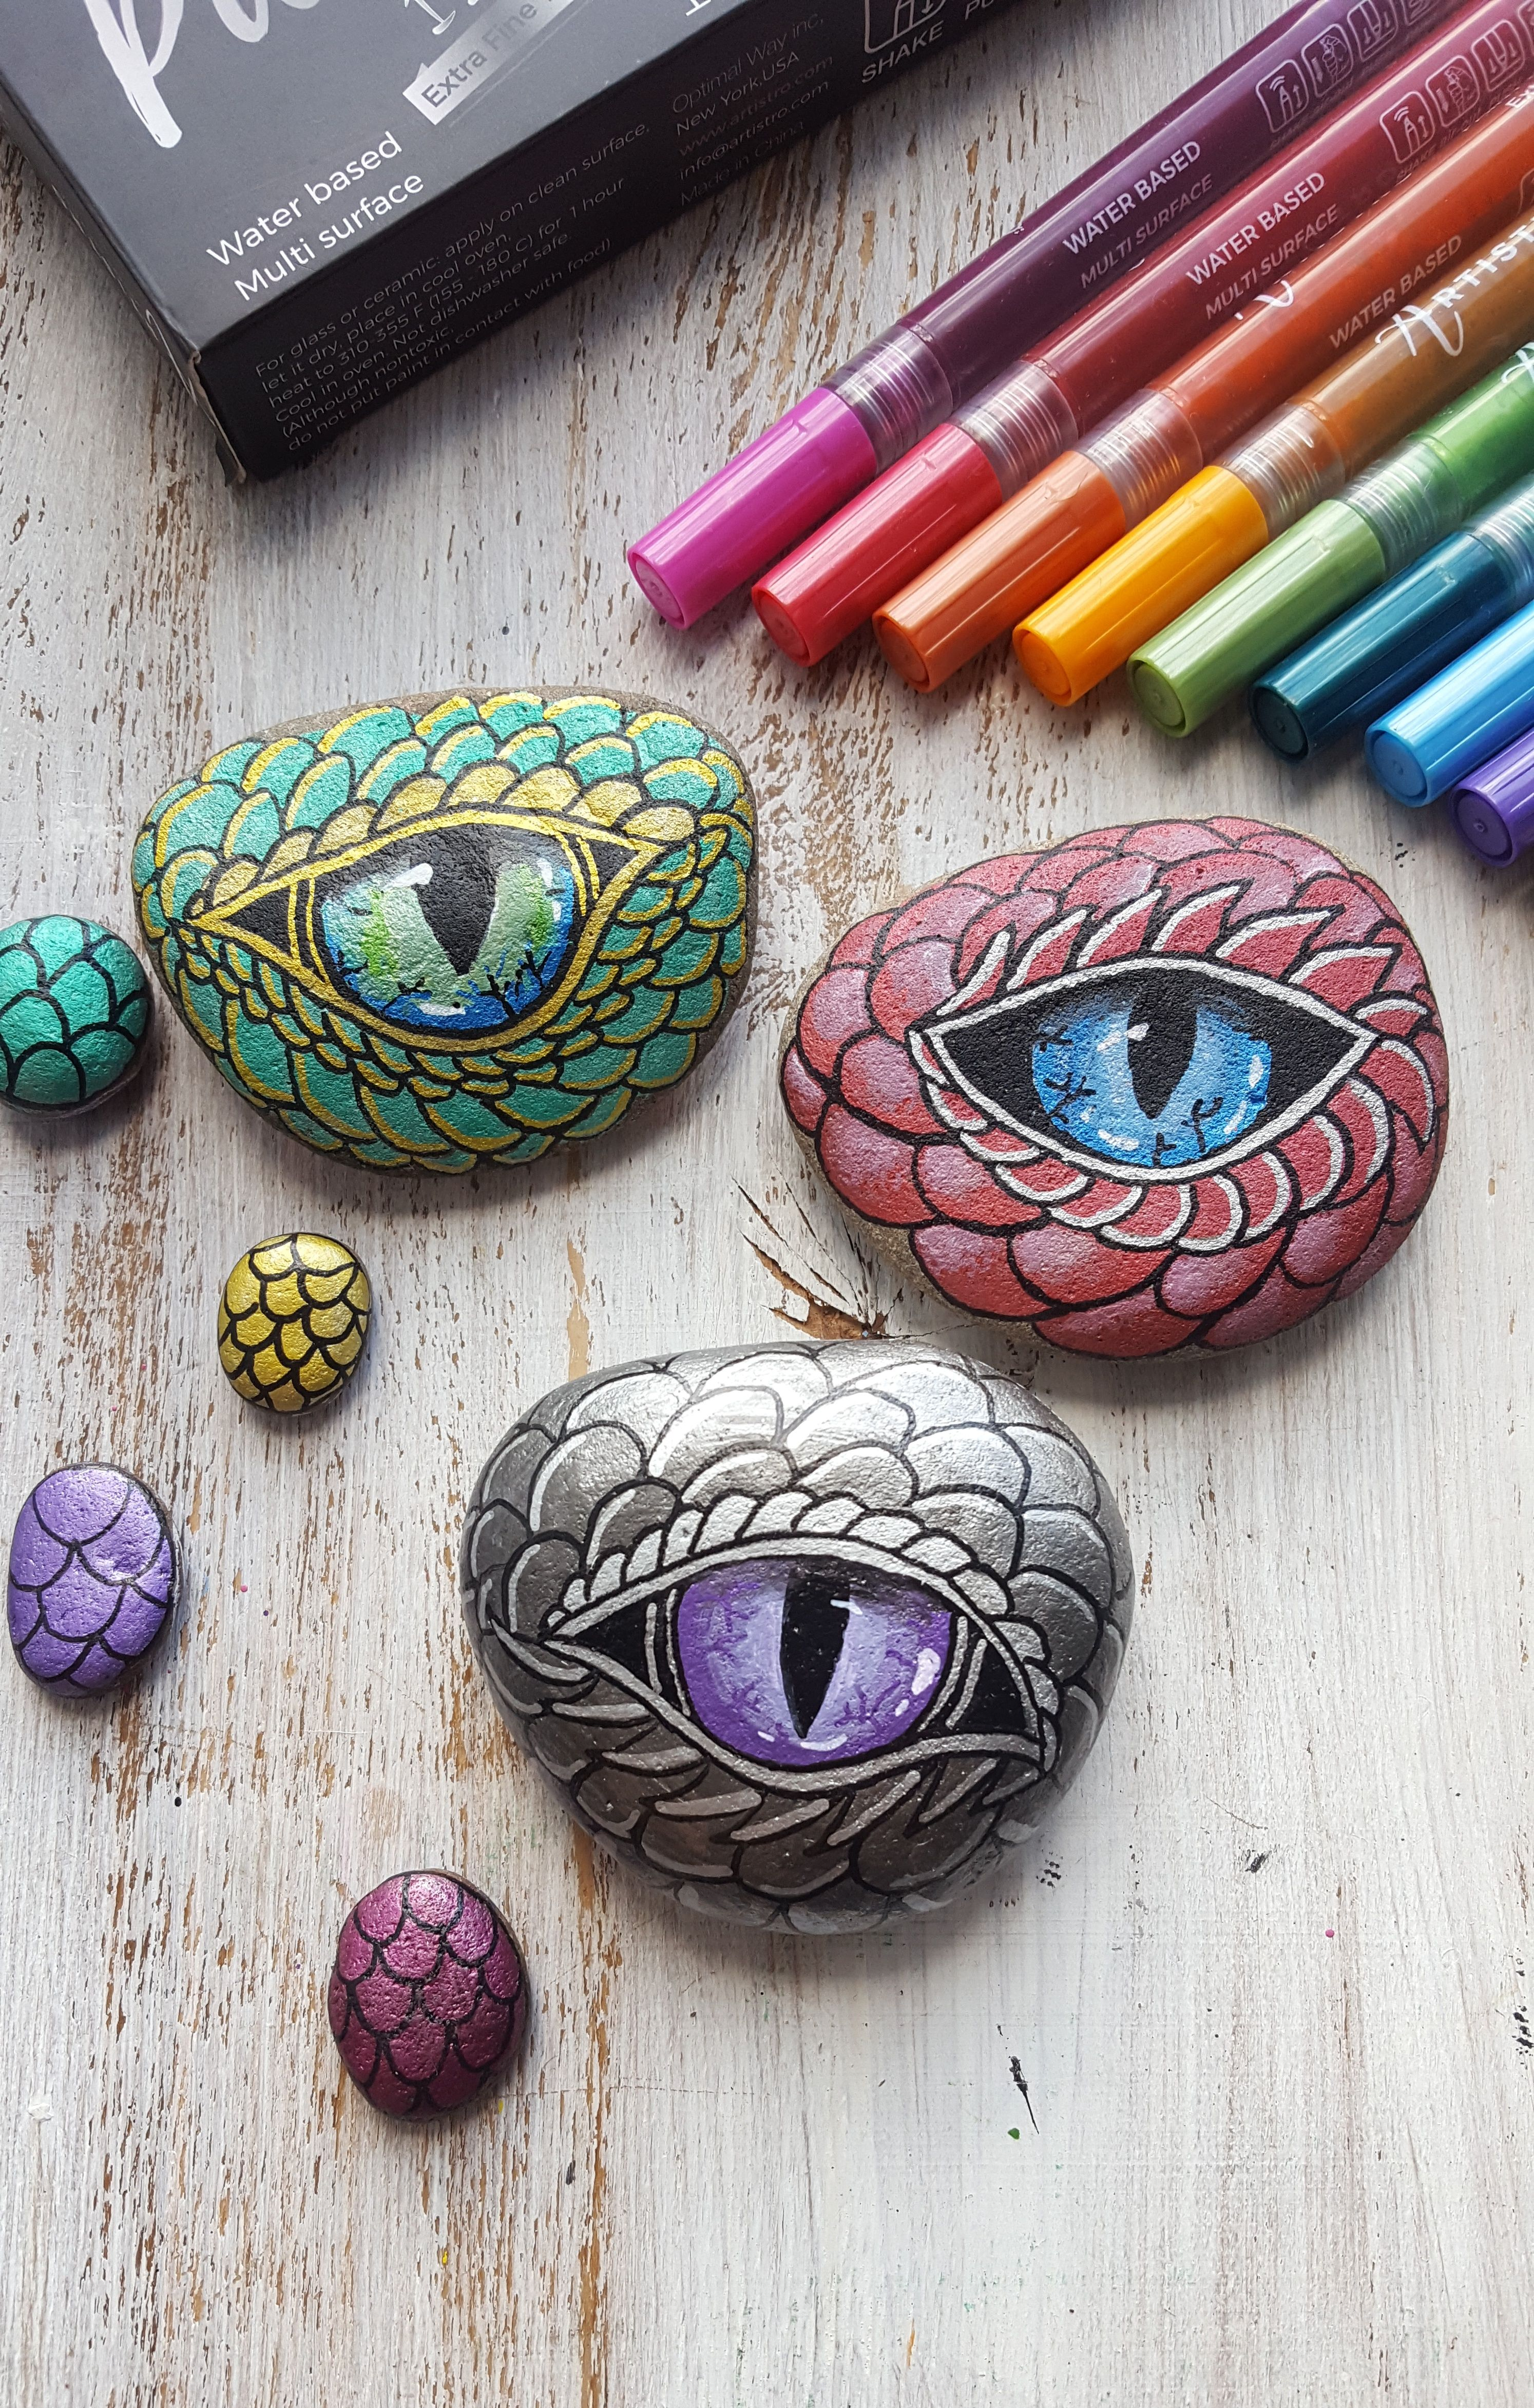 Metallic Paint Pens For Rock Painting And More Set Of 12 Acrylic Paint Markers Extra Fine Tip 0 7mm Mandala Rock Art Rock Painting Patterns Painted Rocks